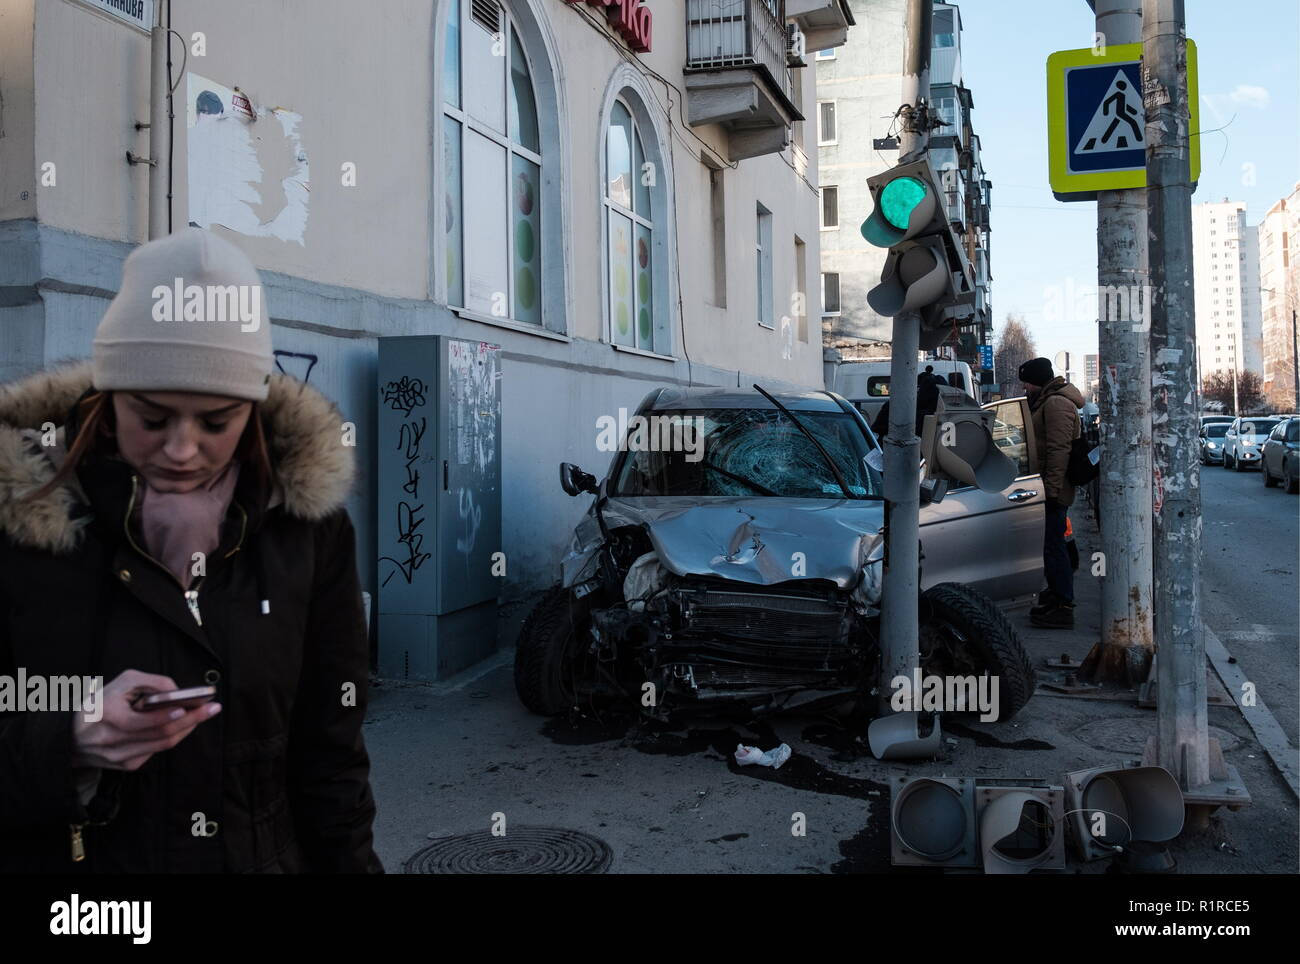 Yekaterinburg, Russia. 14th Nov, 2018. YEKATERINBURG, RUSSIA - NOVEMBER 14, 2018: A wrecked Honda CRV car in the aftermath of an accident in which it hit pedestrians on the pavement; three people have been injured, including a woman and child. Donat Sorokin/TASS Credit: ITAR-TASS News Agency/Alamy Live News - Stock Image